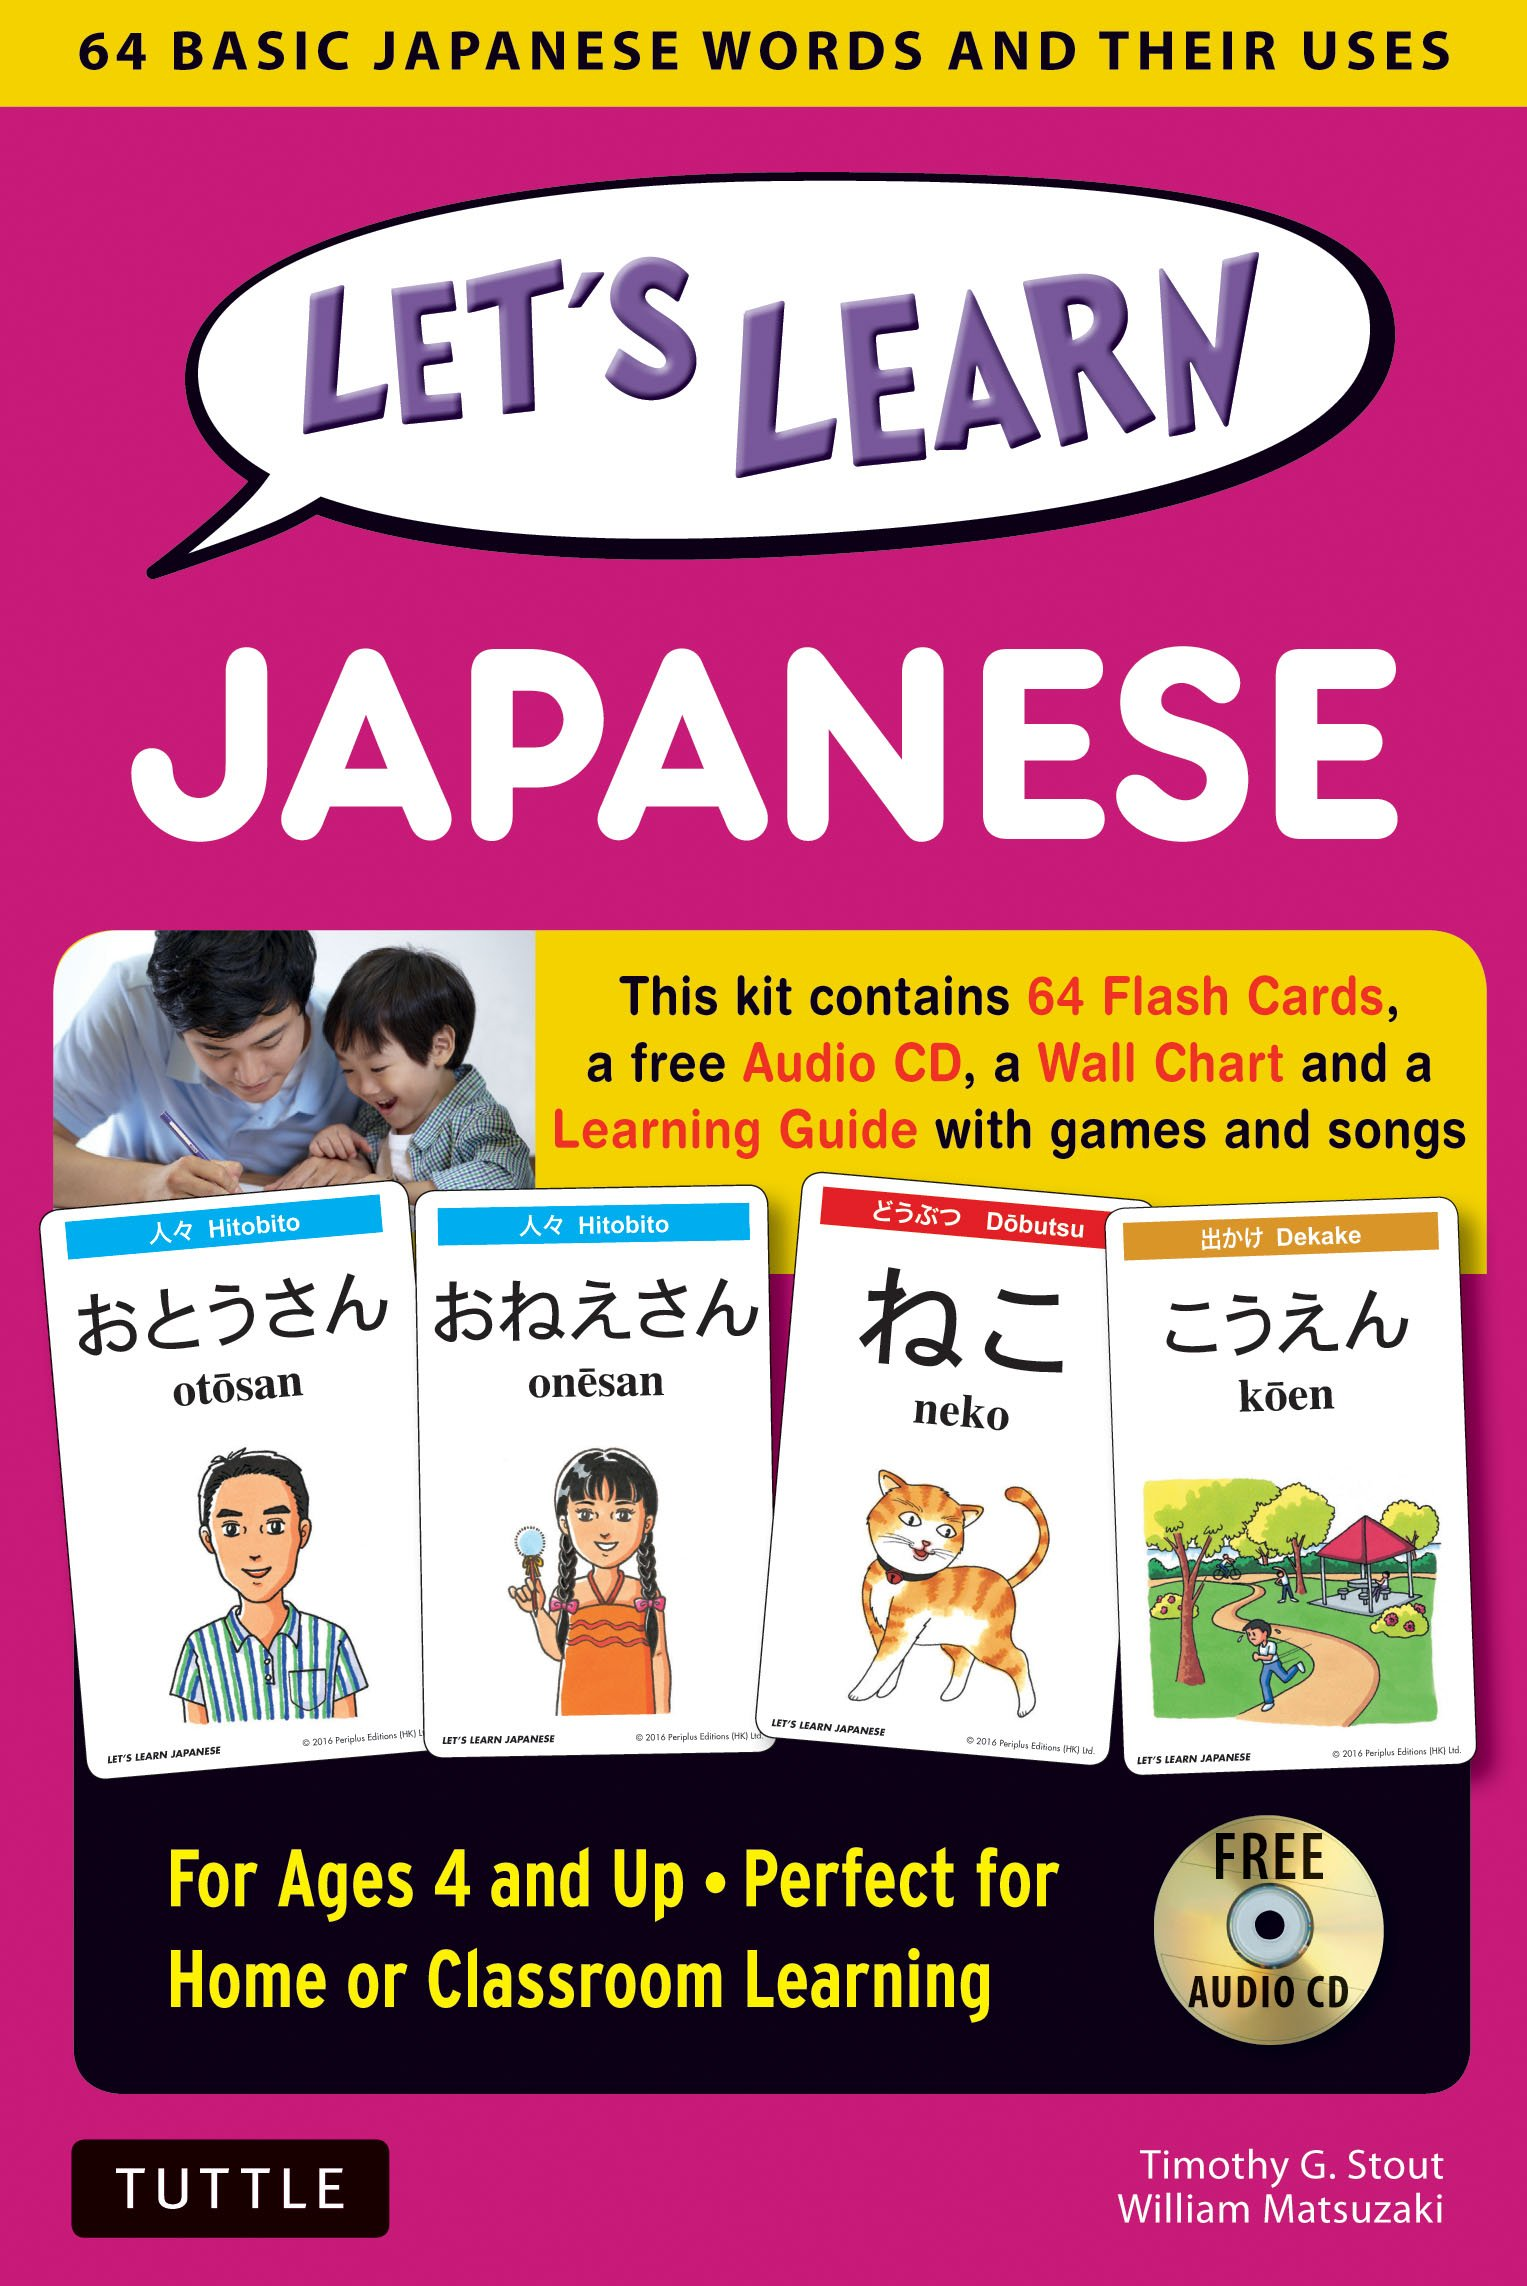 Let's Learn Japanese Kit: 64 Basic Japanese Words and Their